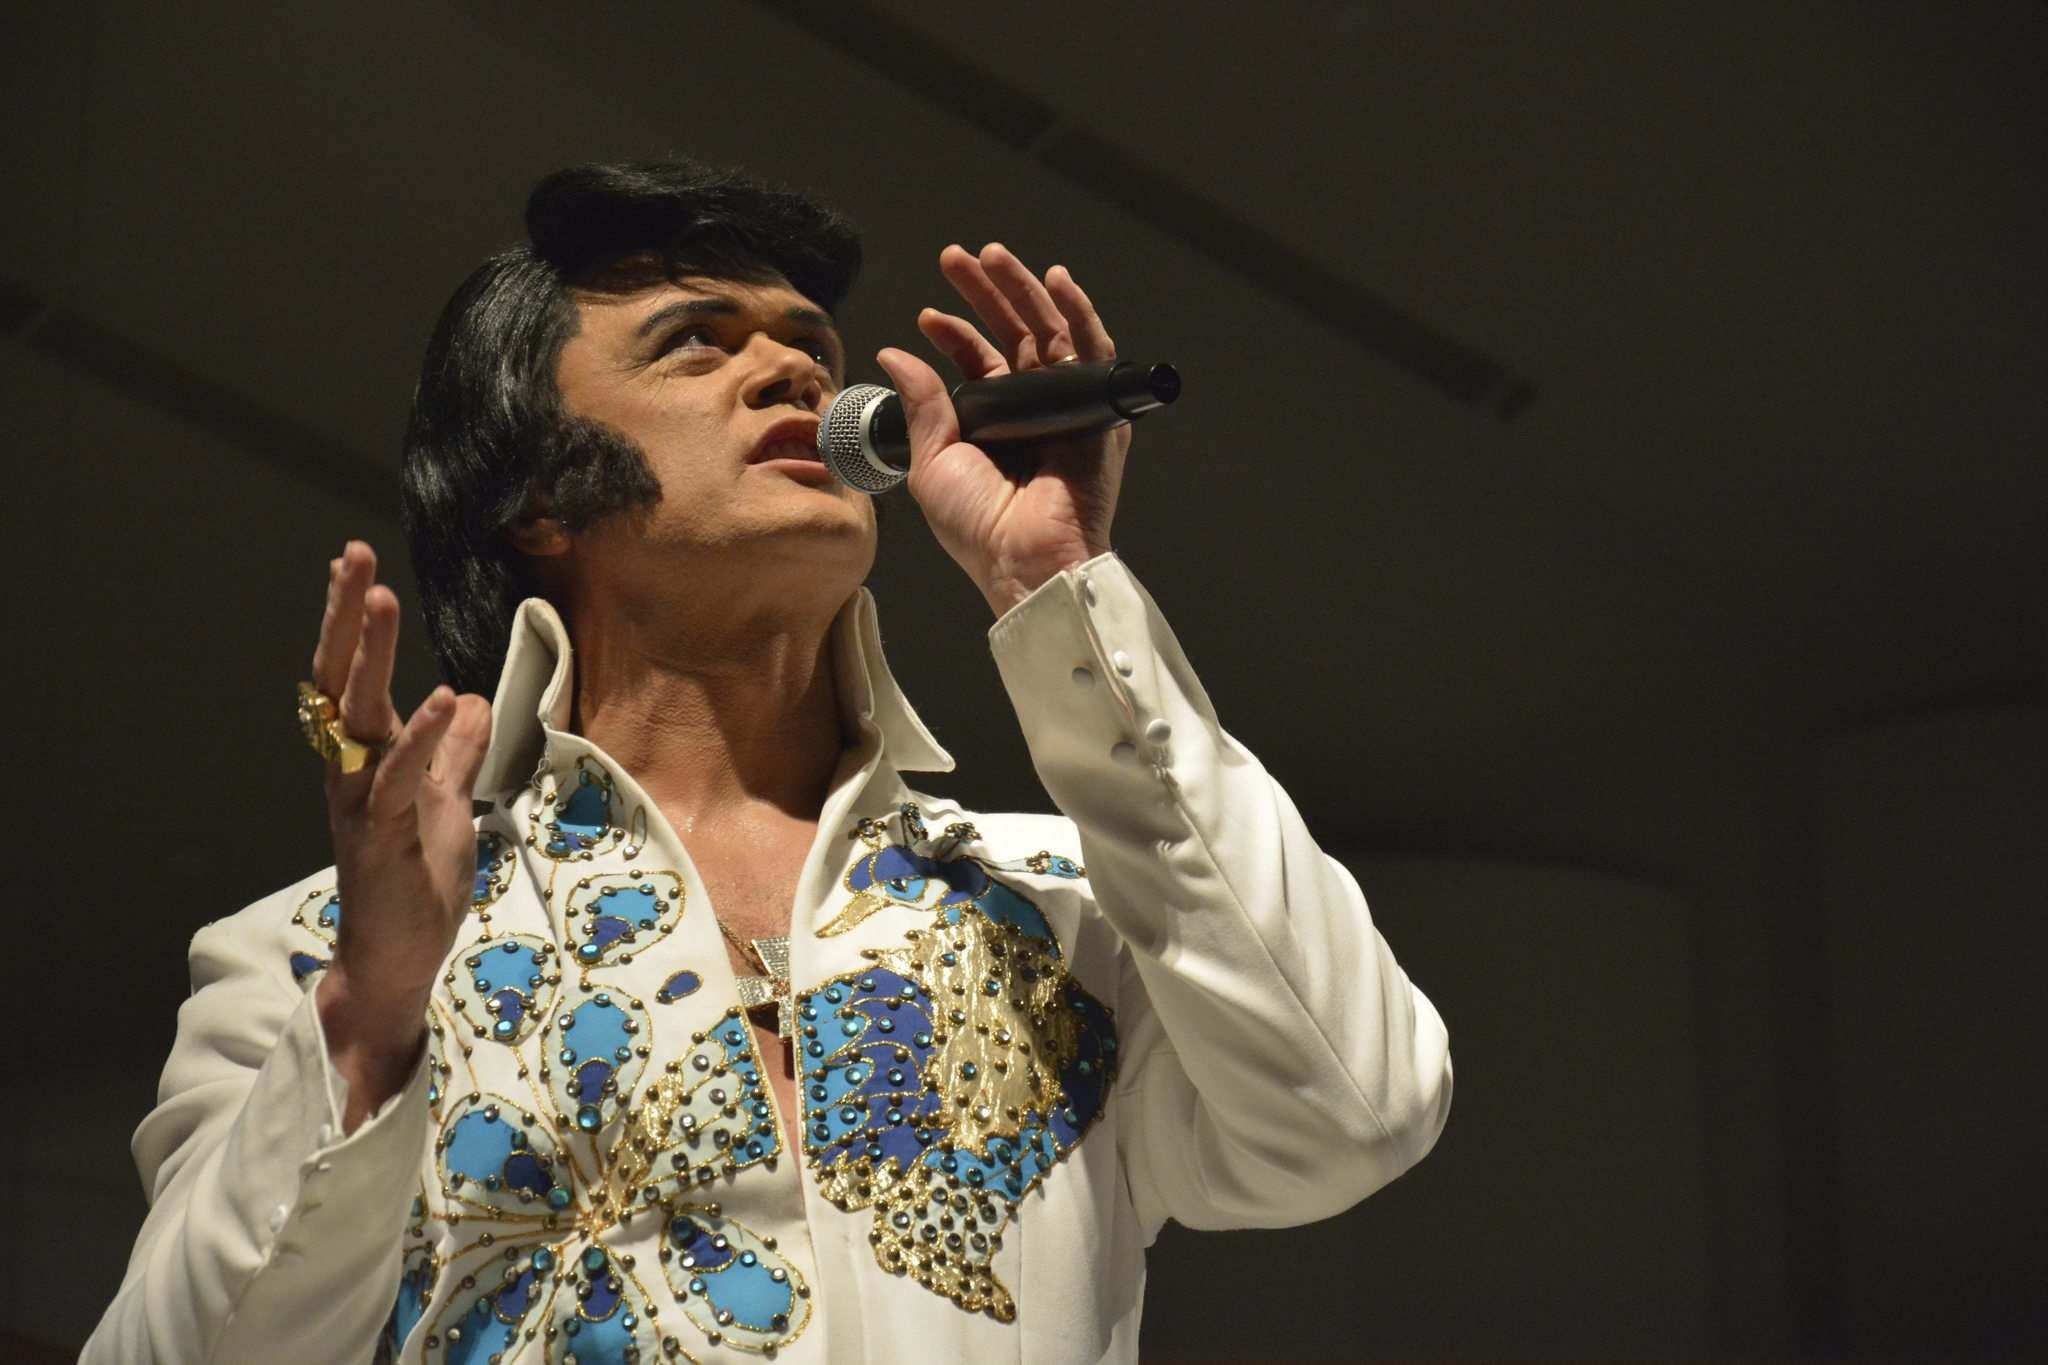 Elvis impersonator Corny Rempel will perform at the Manitoba Elvis Festival in Gimli this weekend.